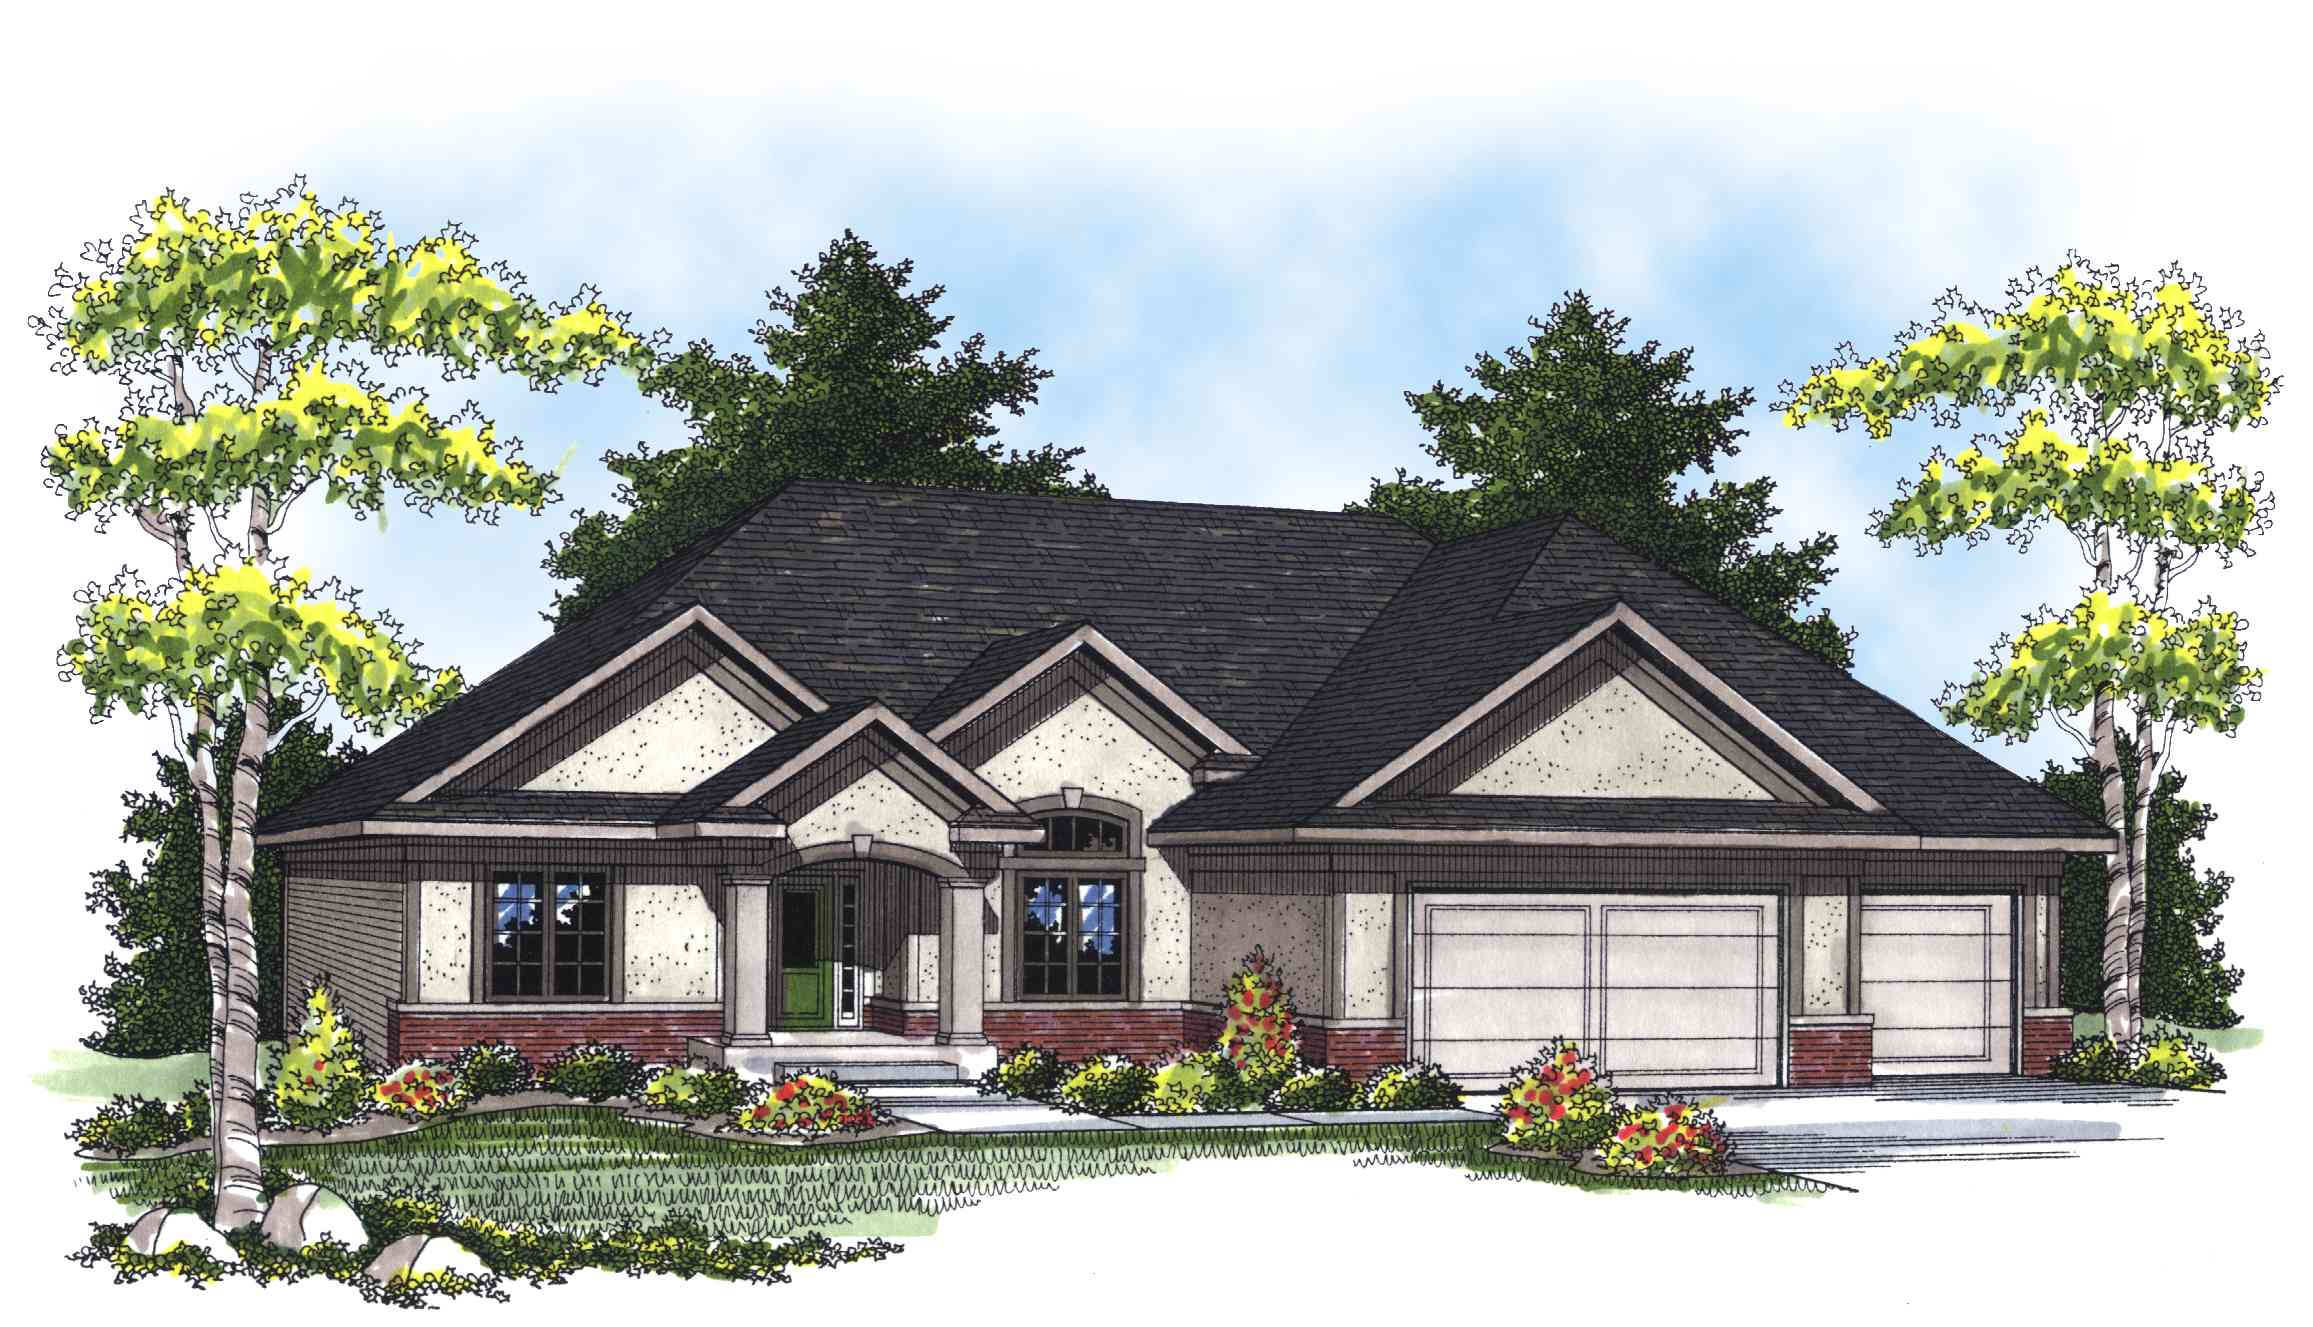 Traditional ranch home plan 89268ah architectural for Traditional ranch home plans